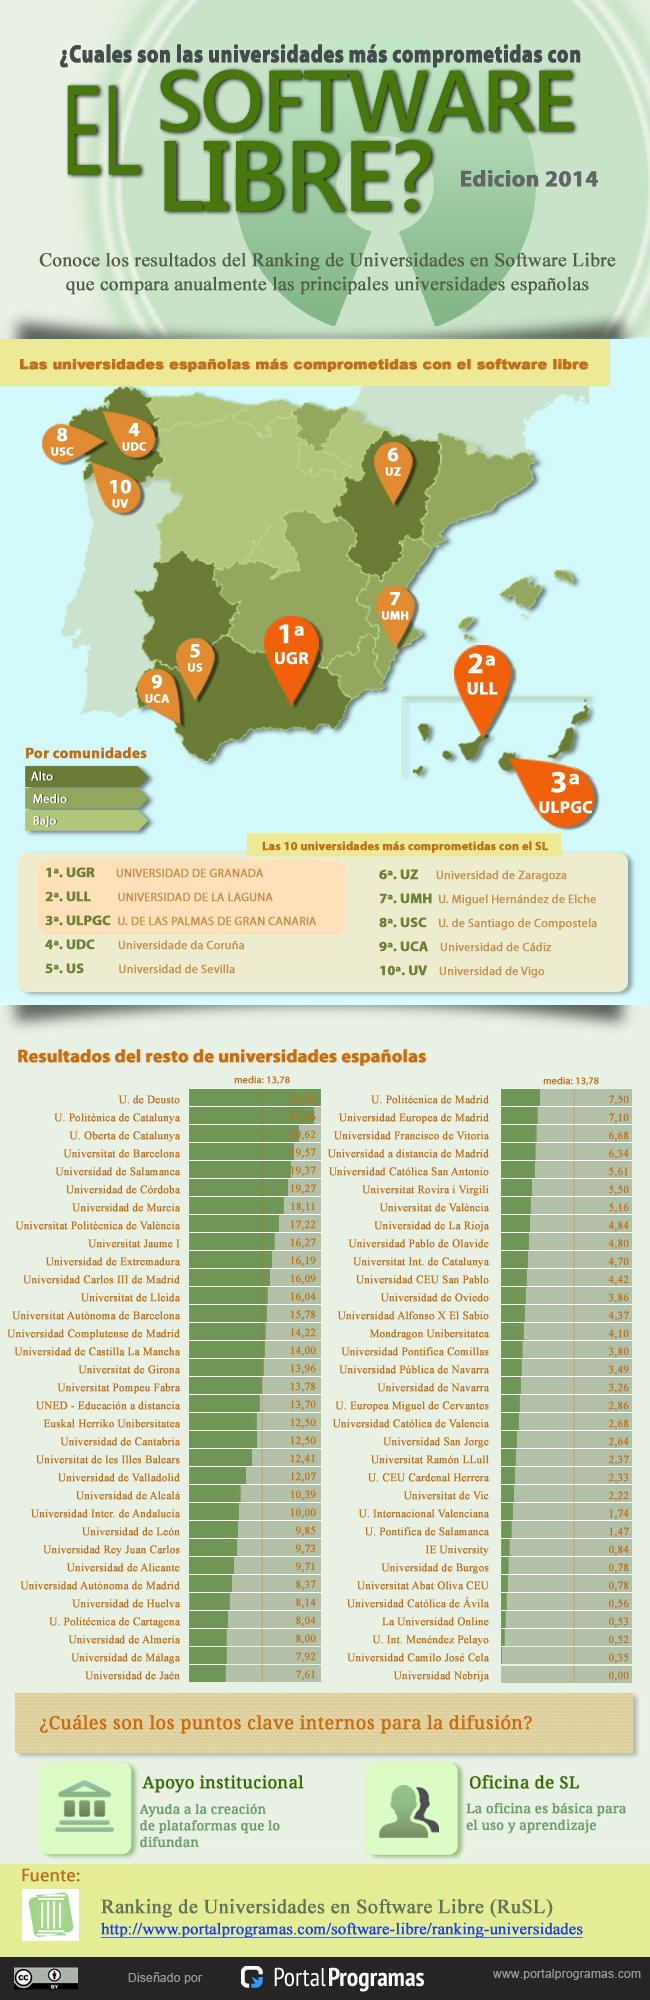 Ranking de universidades en software libre 2014 - Infografia